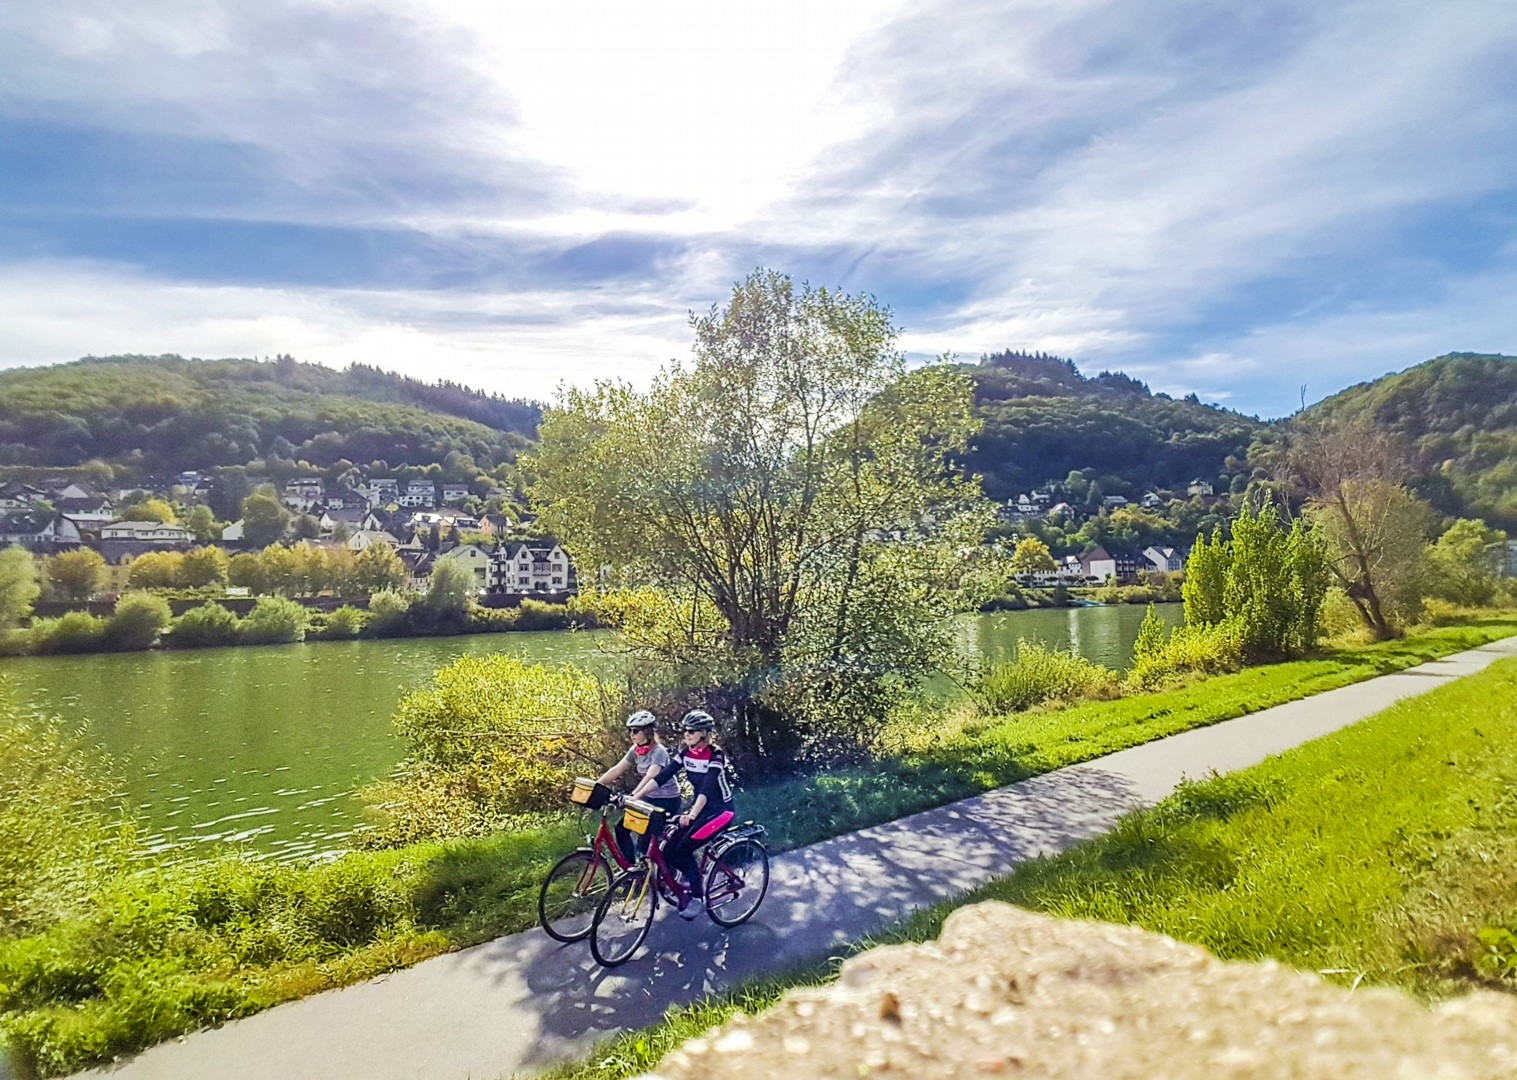 cycling-germany-moselle-river-saddle-skedaddle.jpg - Germany - Moselle Valley - Self-Guided Leisure Cycling Holiday - Leisure Cycling